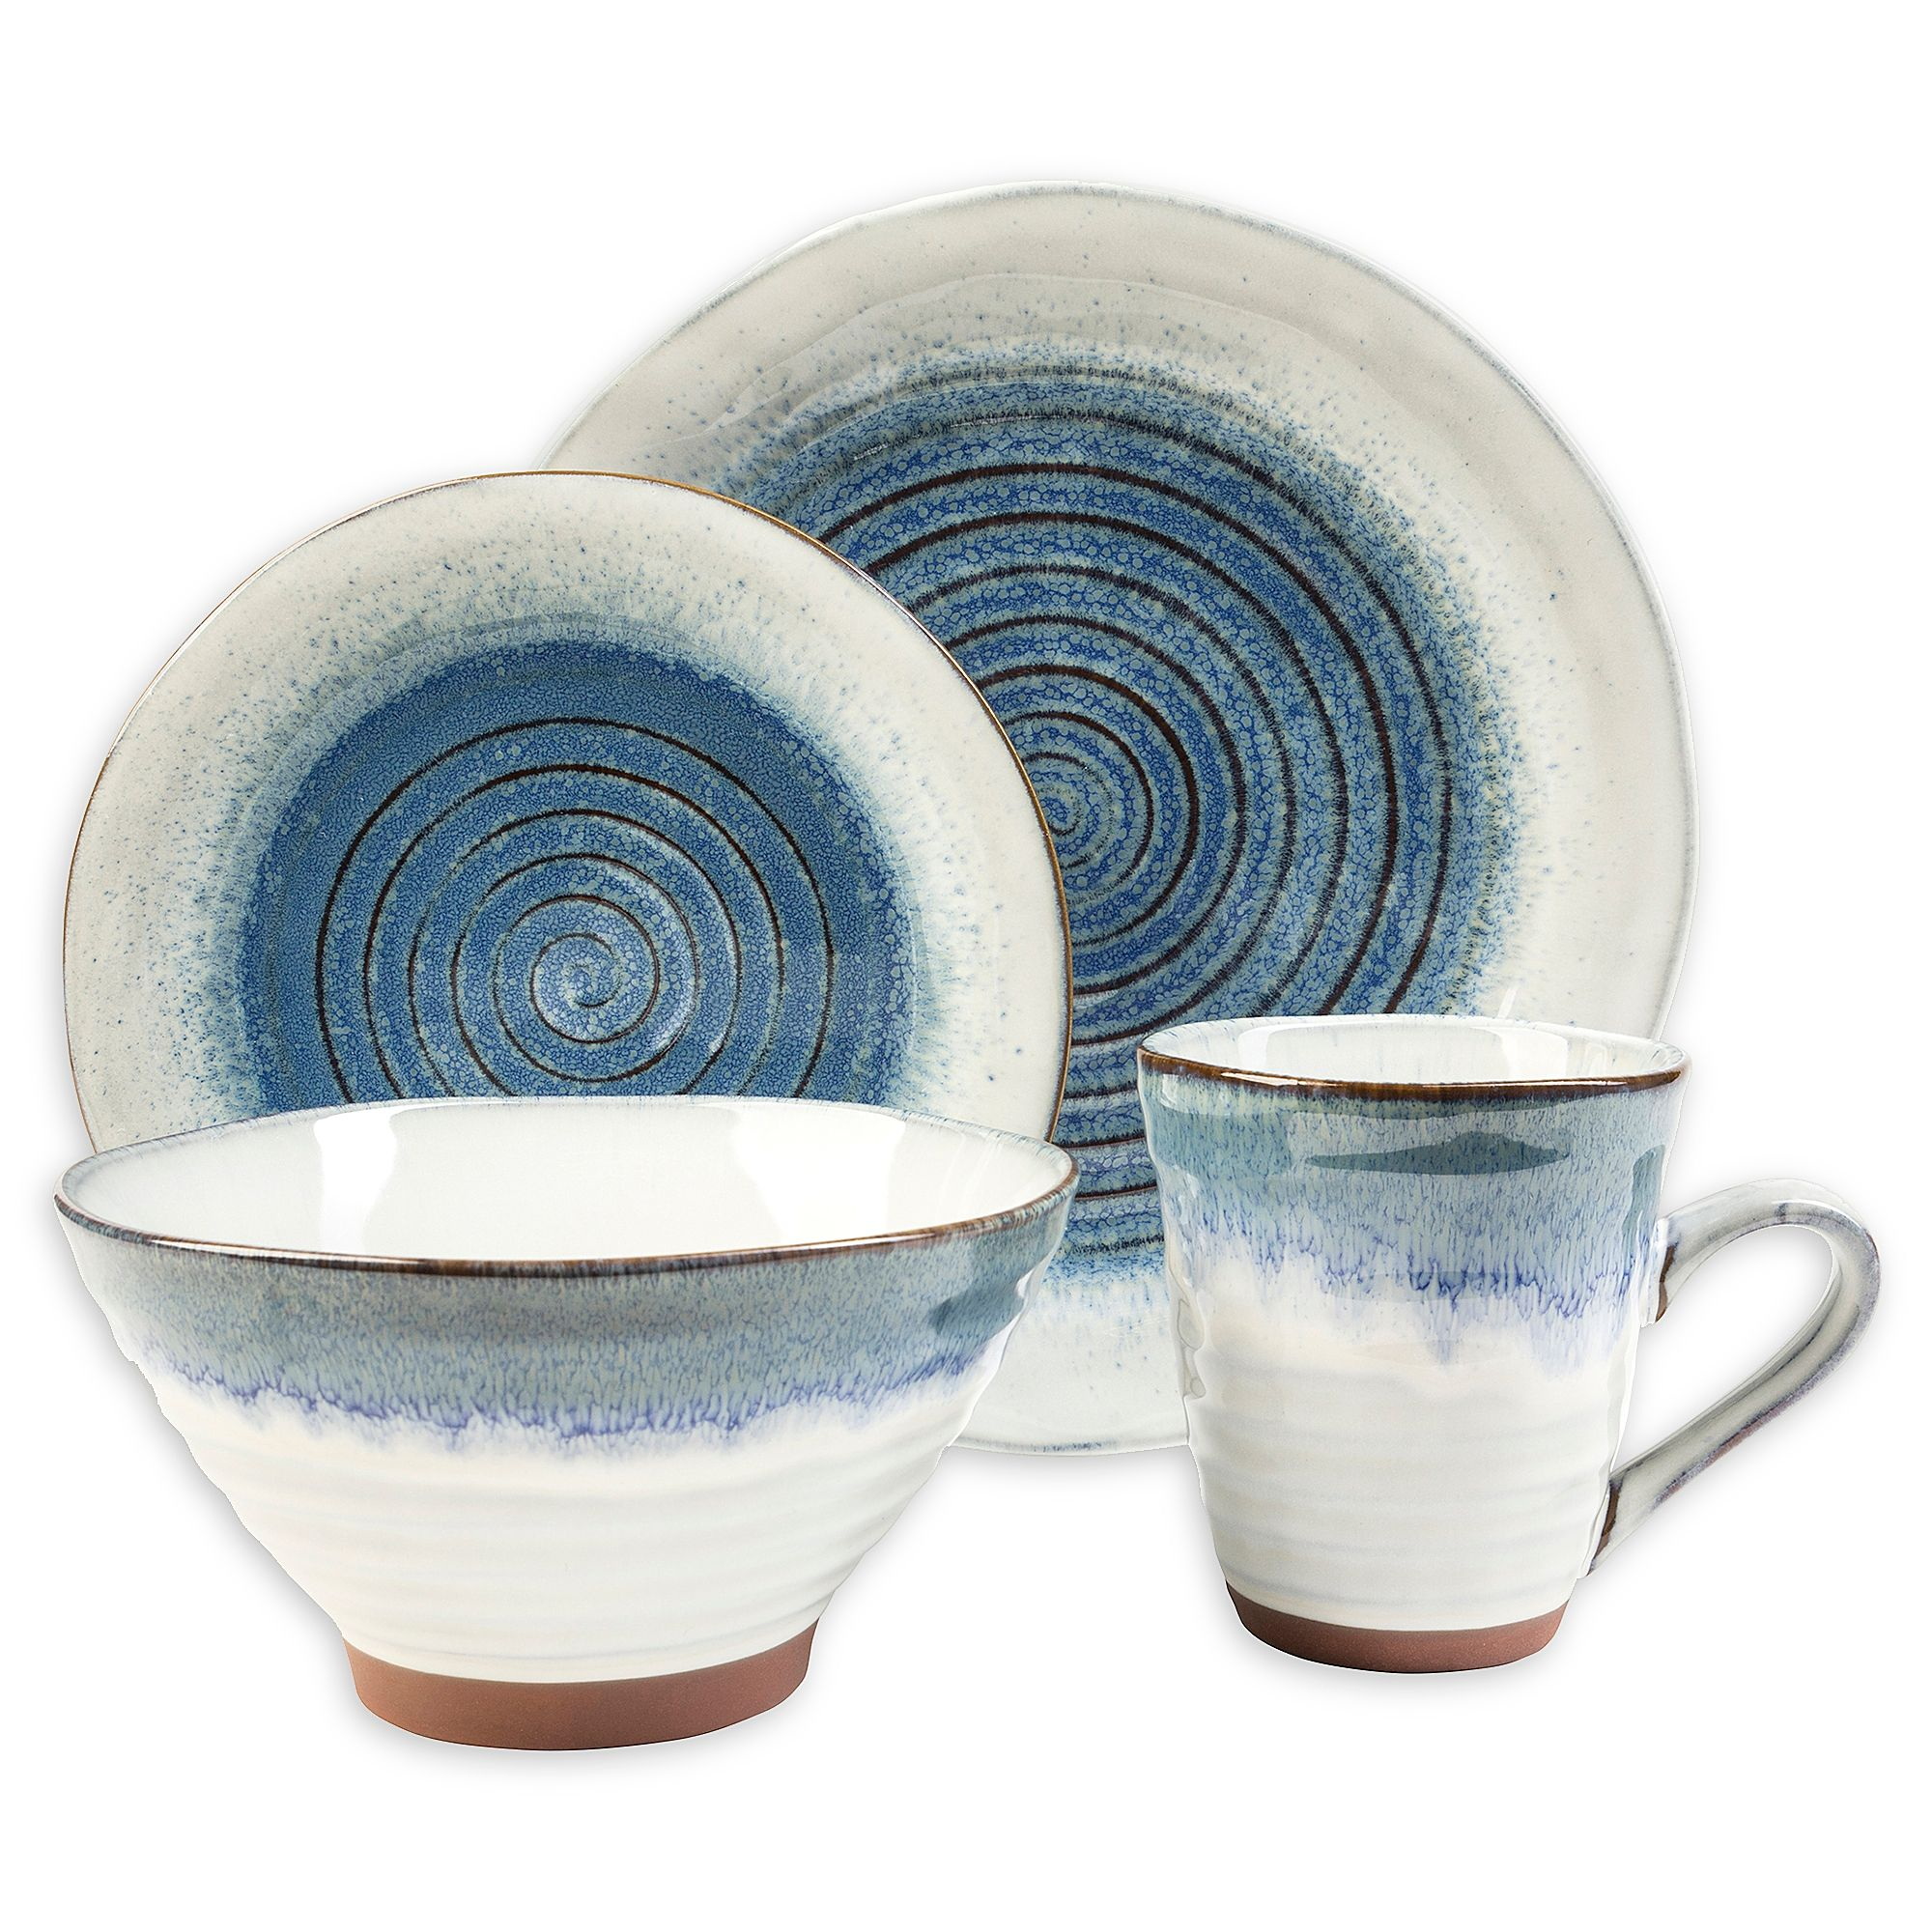 Sango Talia 16 Piece Dinnerware Set In Blue Bed Bath Beyond Stoneware Dinnerware Sets Blue Dinnerware Sets Blue Dinnerware